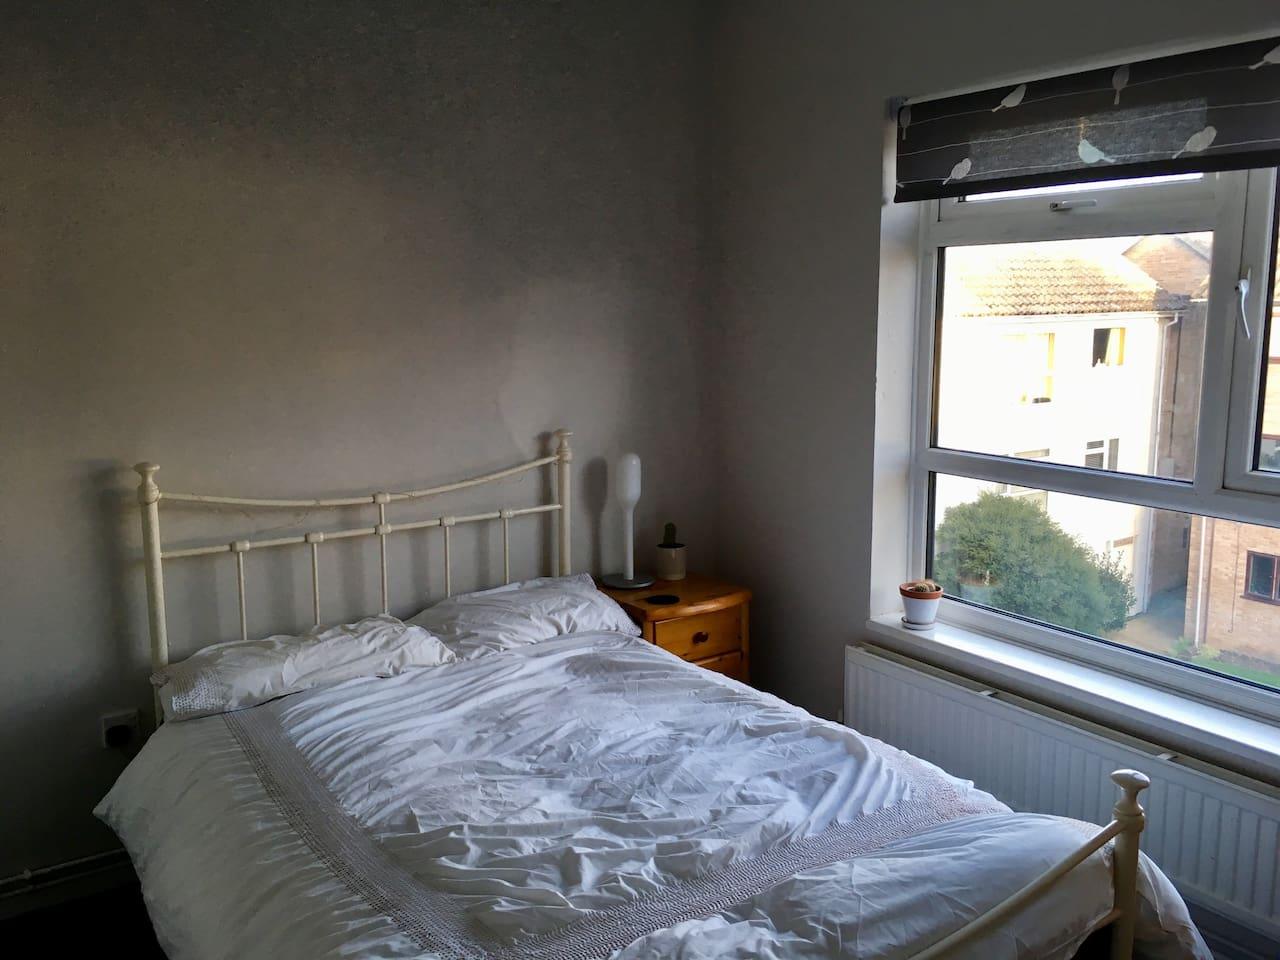 Double bed with a memory foam mattress, side lamp and side table